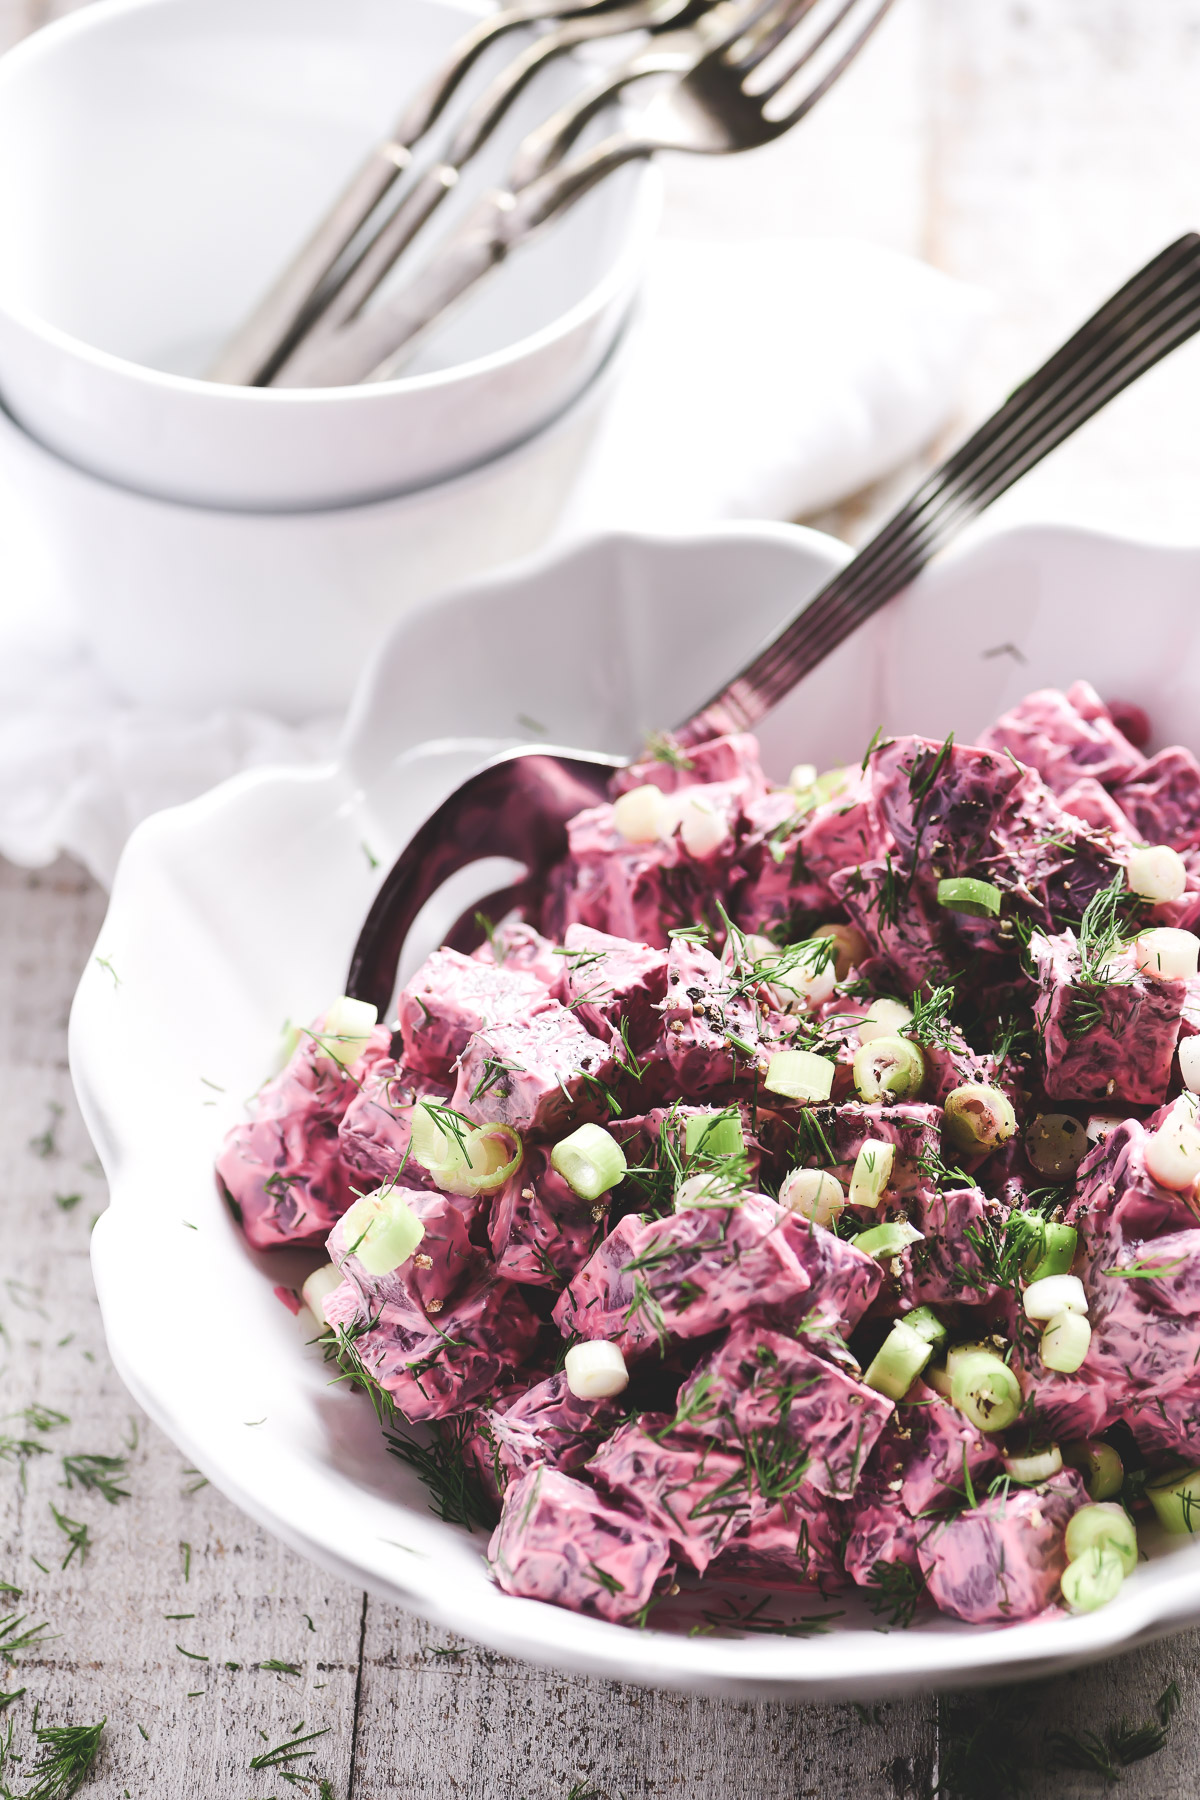 Russian beet salad in a white bowl